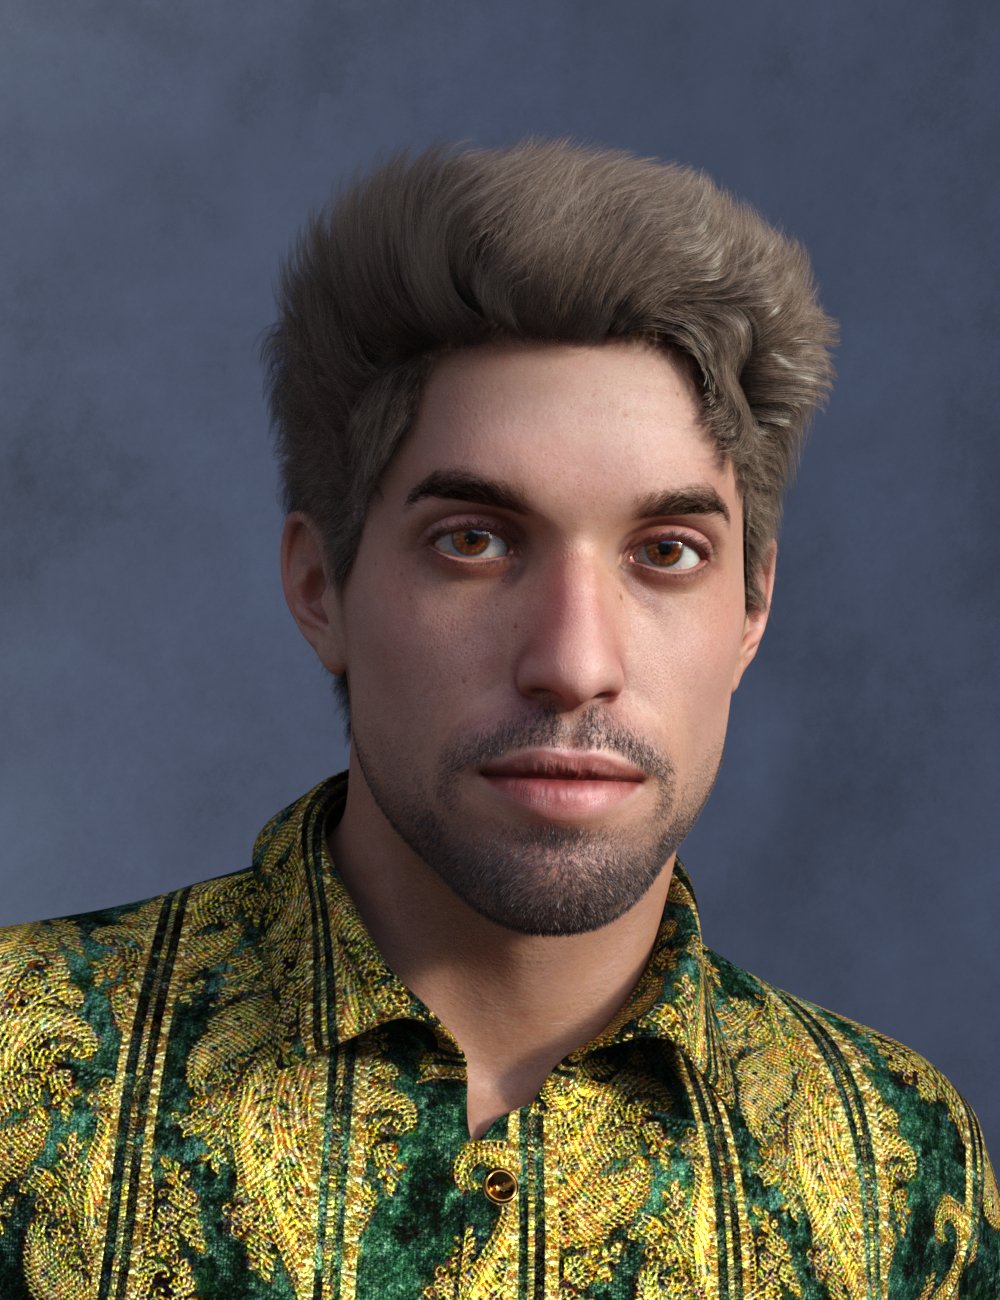 Mick, Hair and dForce Outfit for Mick Genesis 8 and 8.1 Males by: Vyusur, 3D Models by Daz 3D